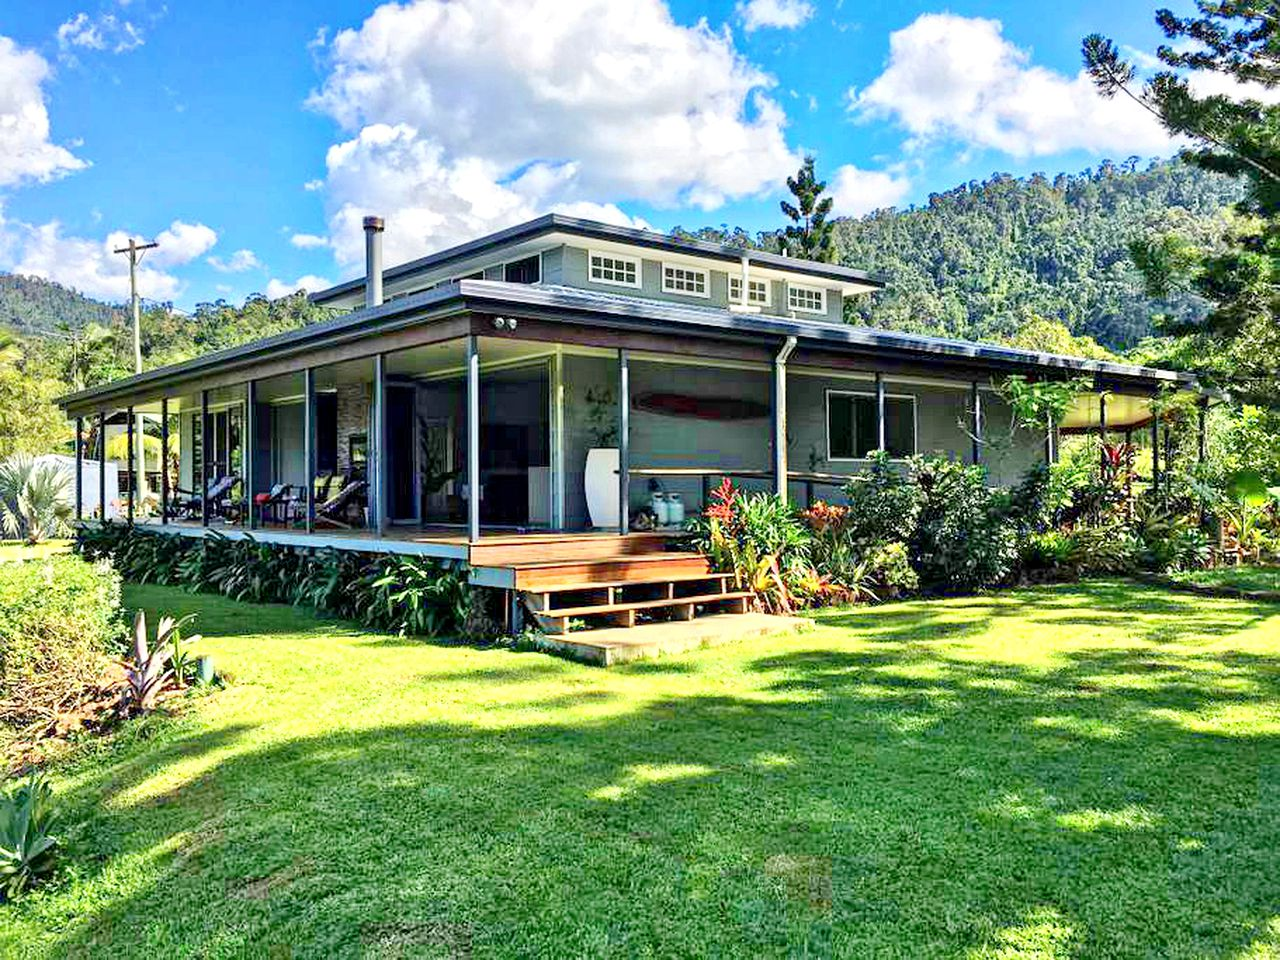 Cottages (Mount Charlton, Queensland, Australia)